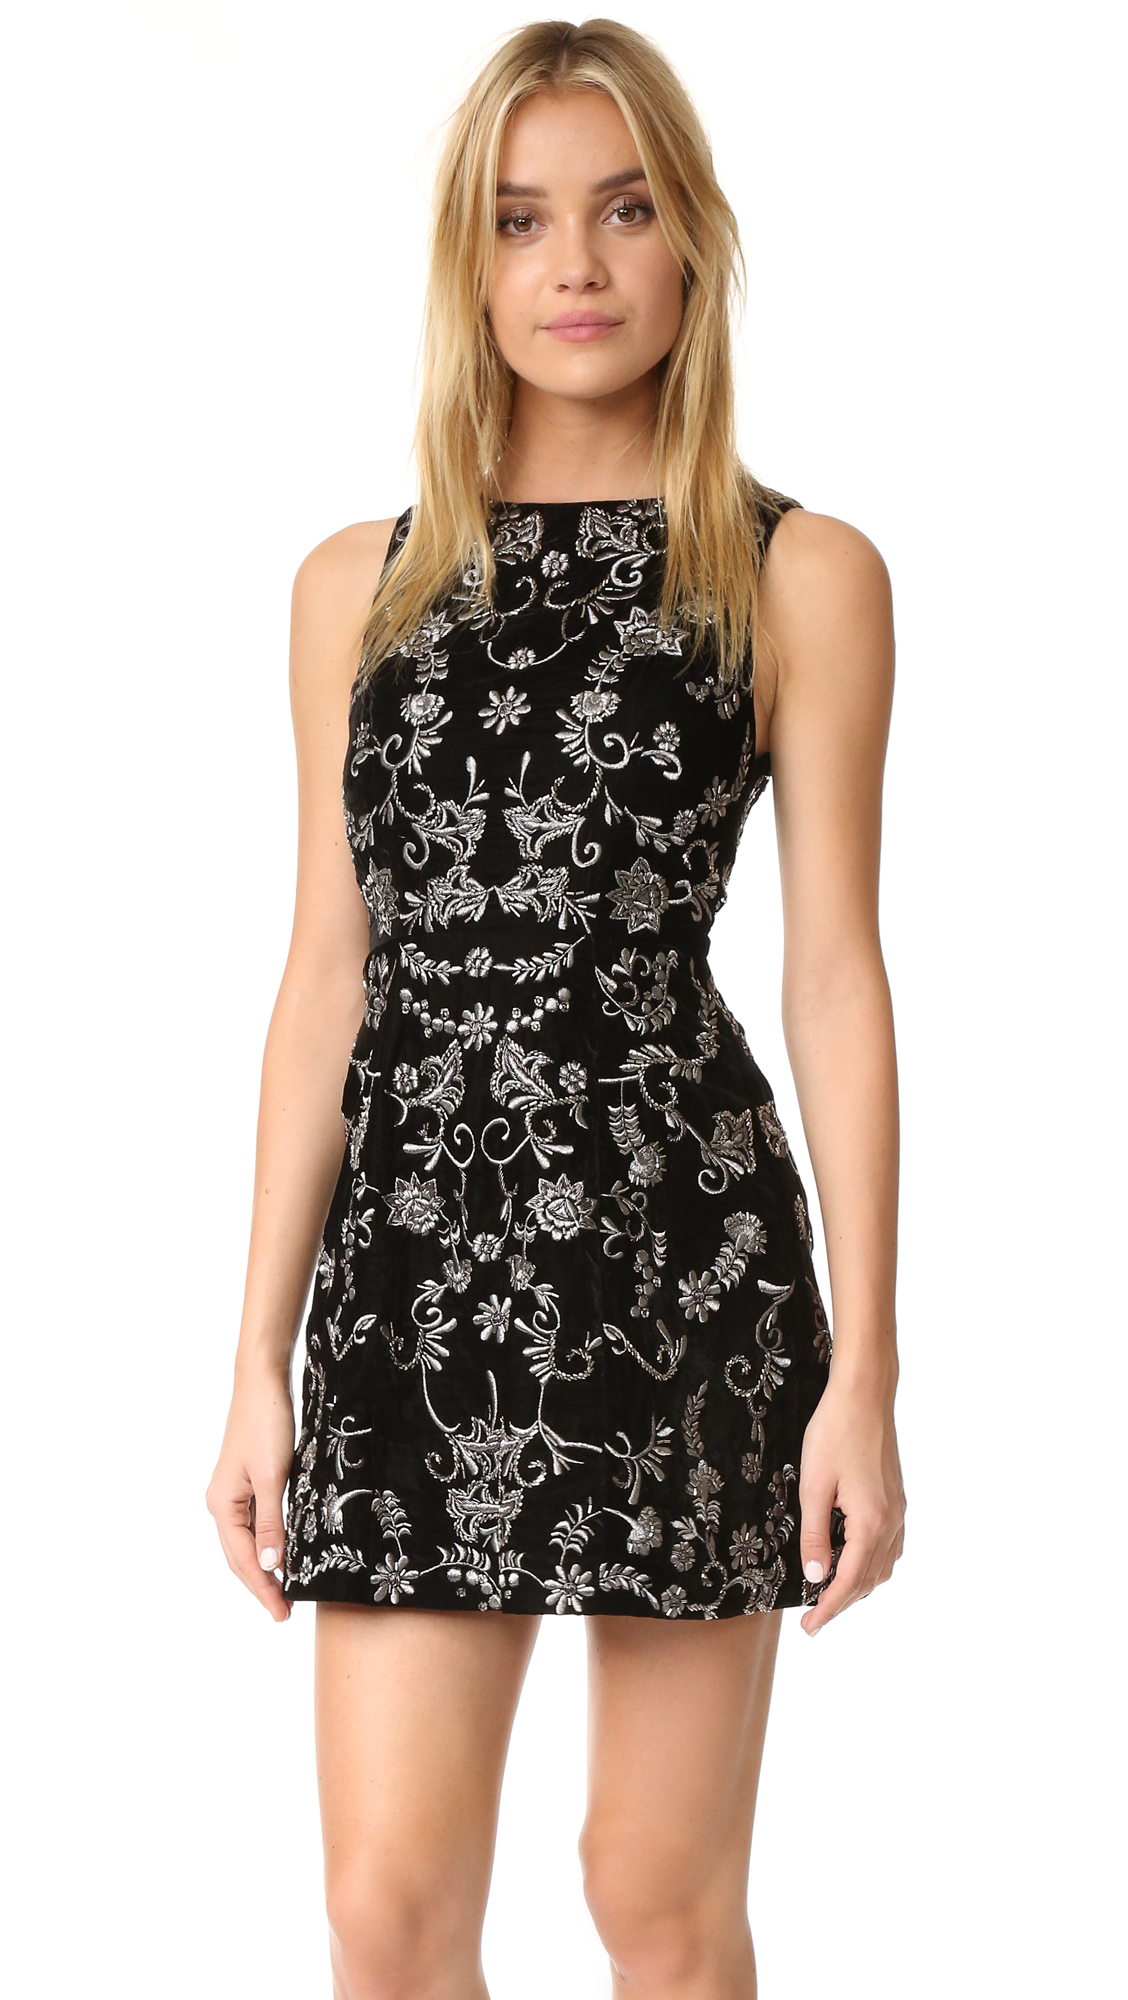 Alice Olivia Dresses And Clothing Cj Online Stores